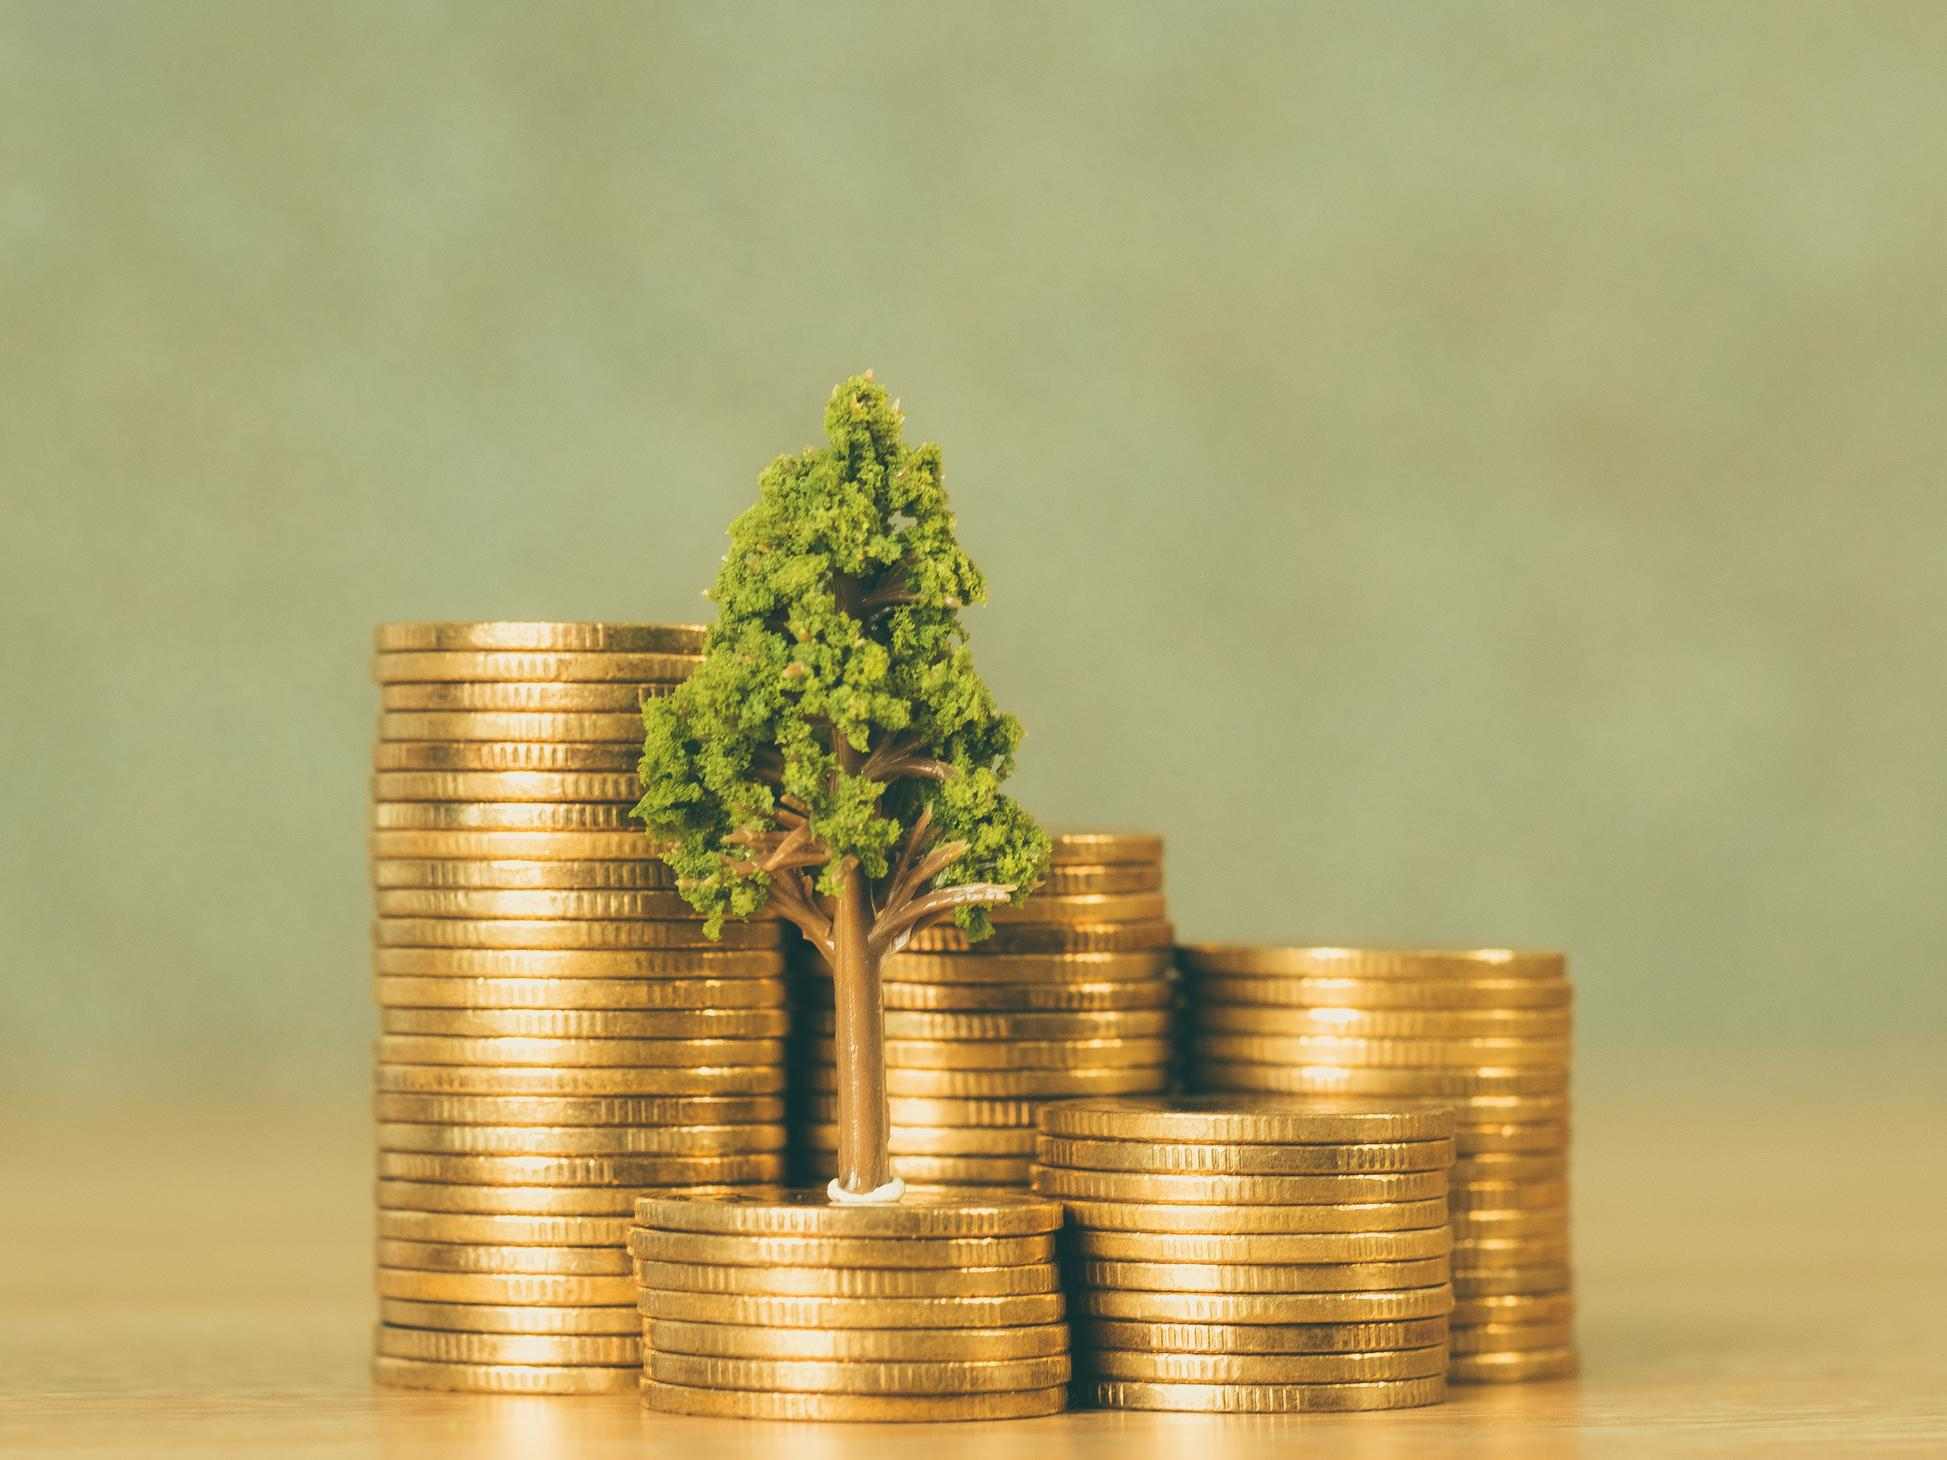 Socially responsible investment: what is the potential profitability compared with a traditional investment strategy?